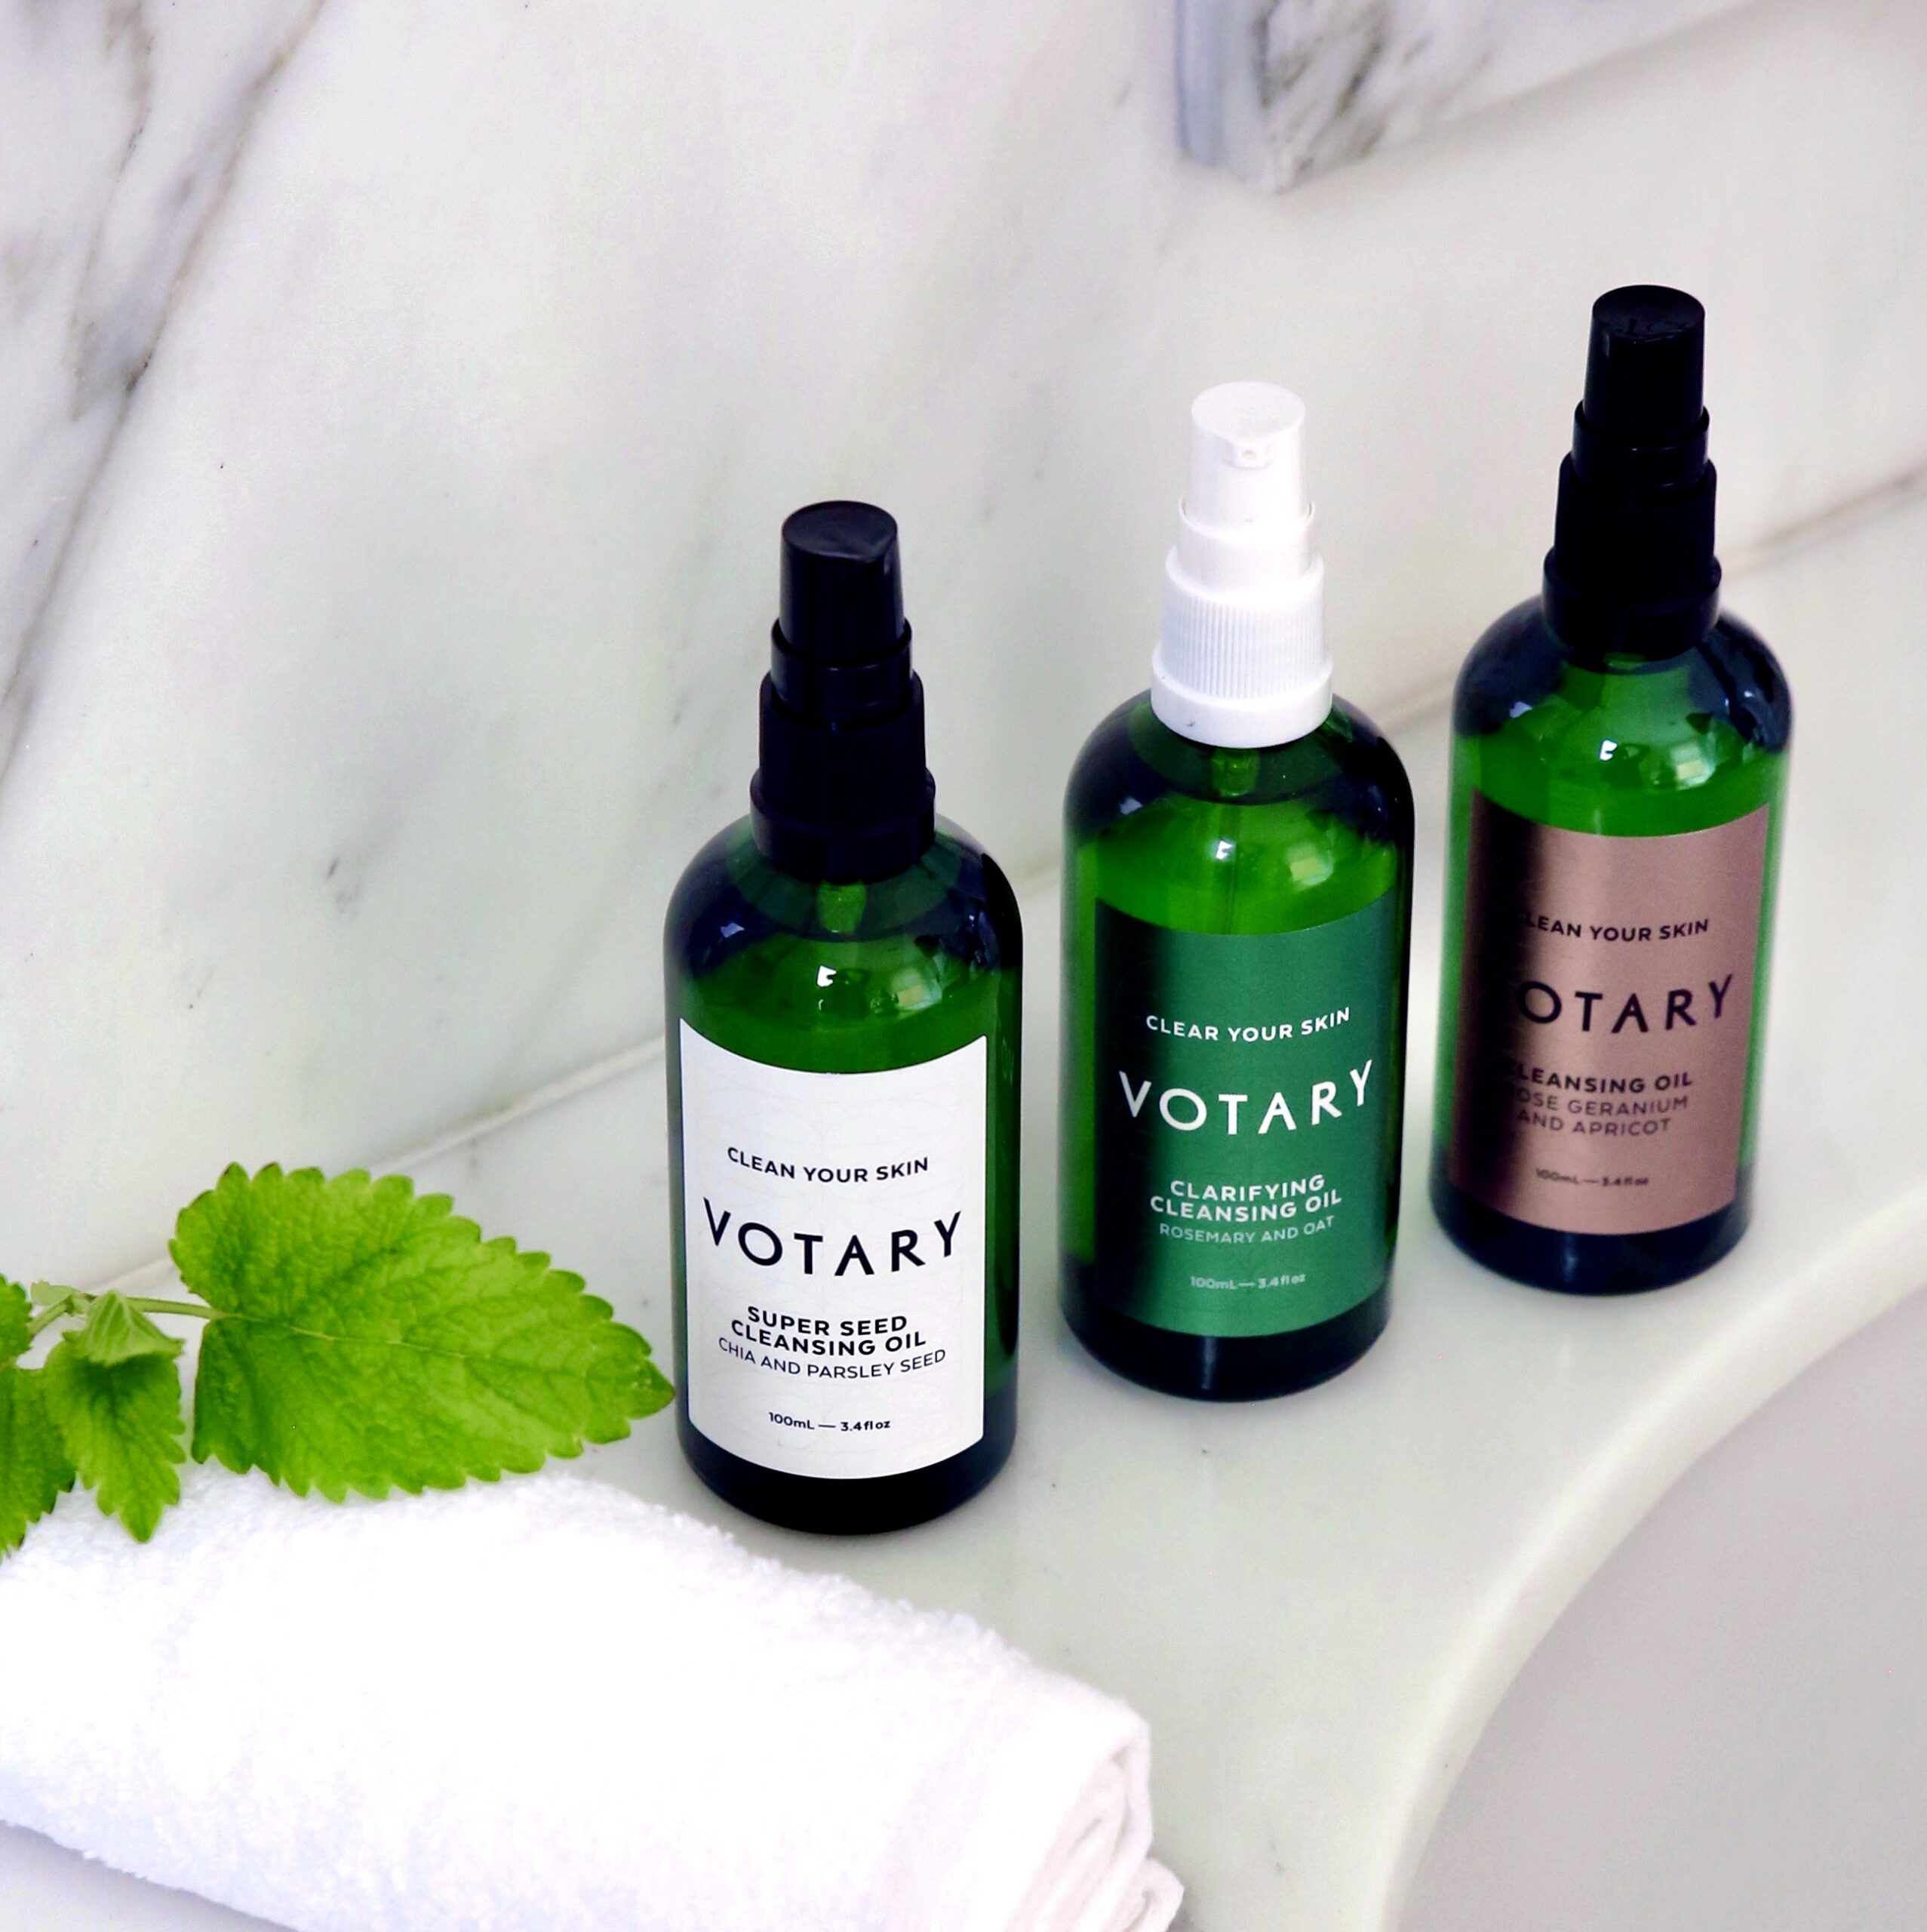 Votary Cleansing Oils. natural oil cleansing method